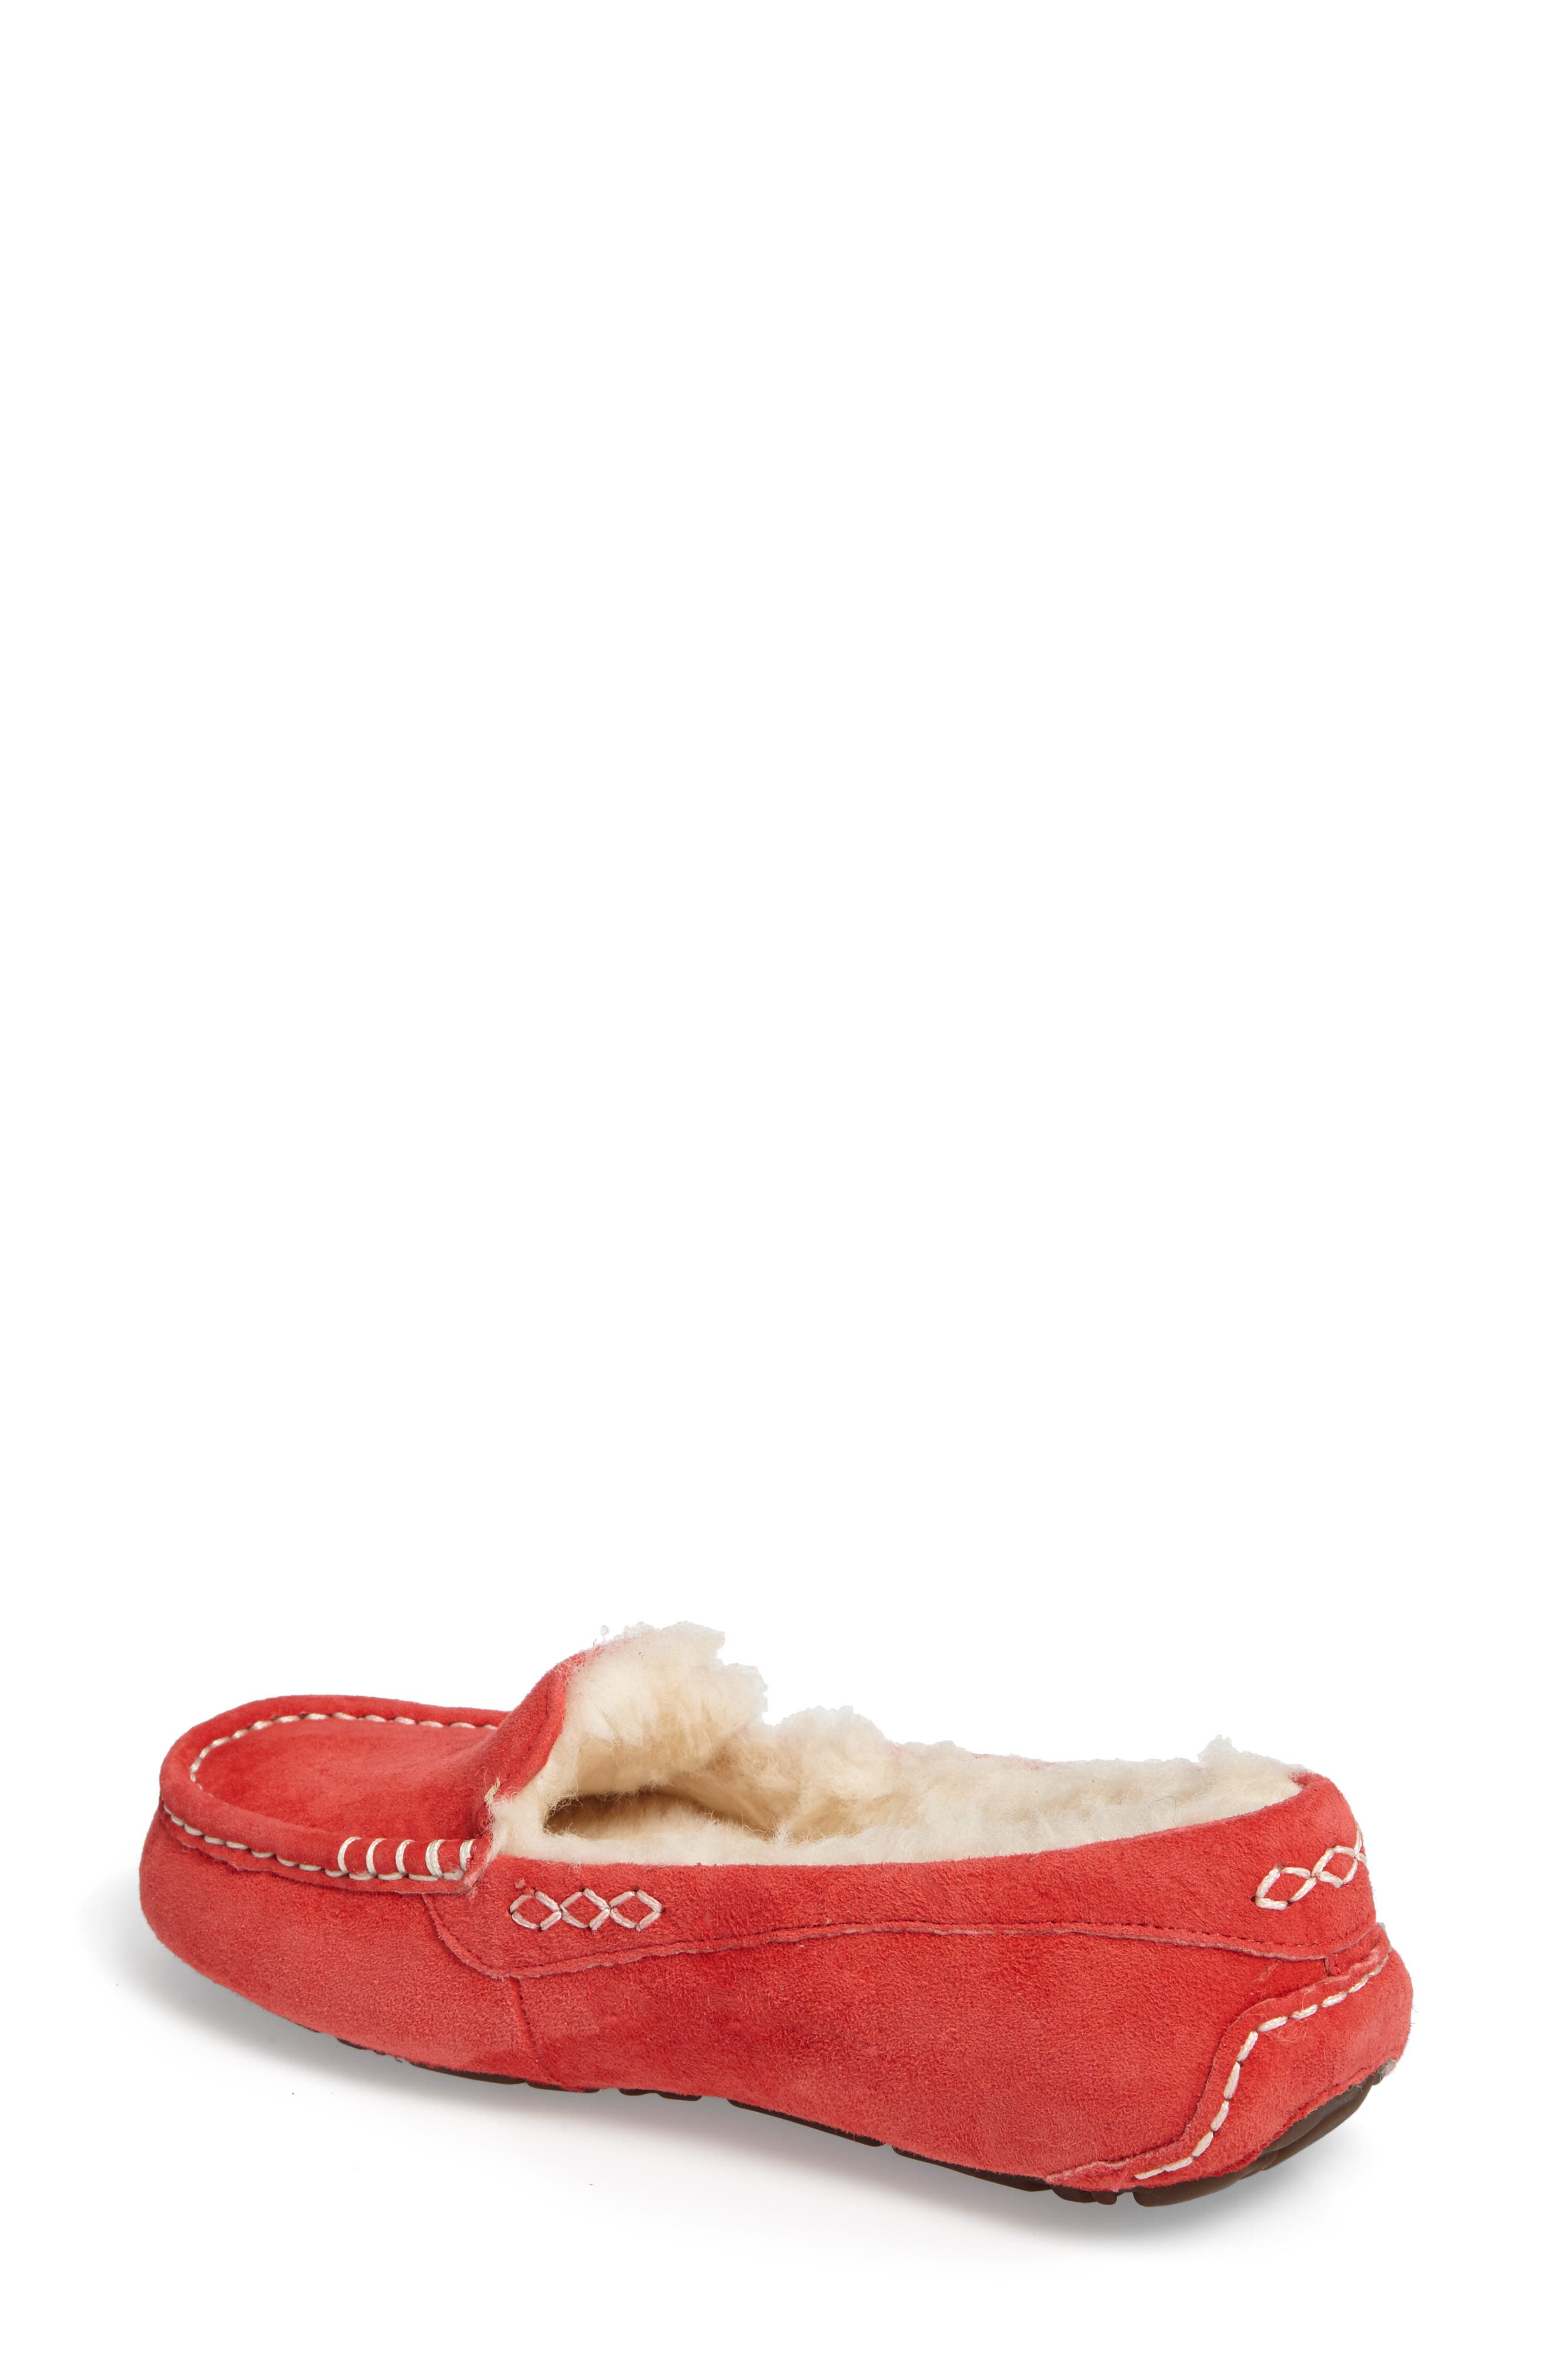 Ansley Water Resistant Slipper,                             Alternate thumbnail 2, color,                             Tango Suede